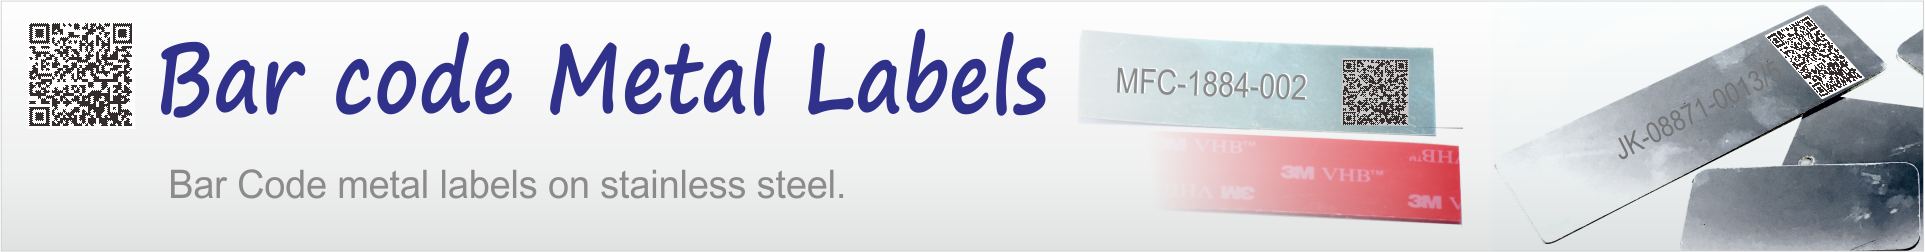 Barcode metal labels